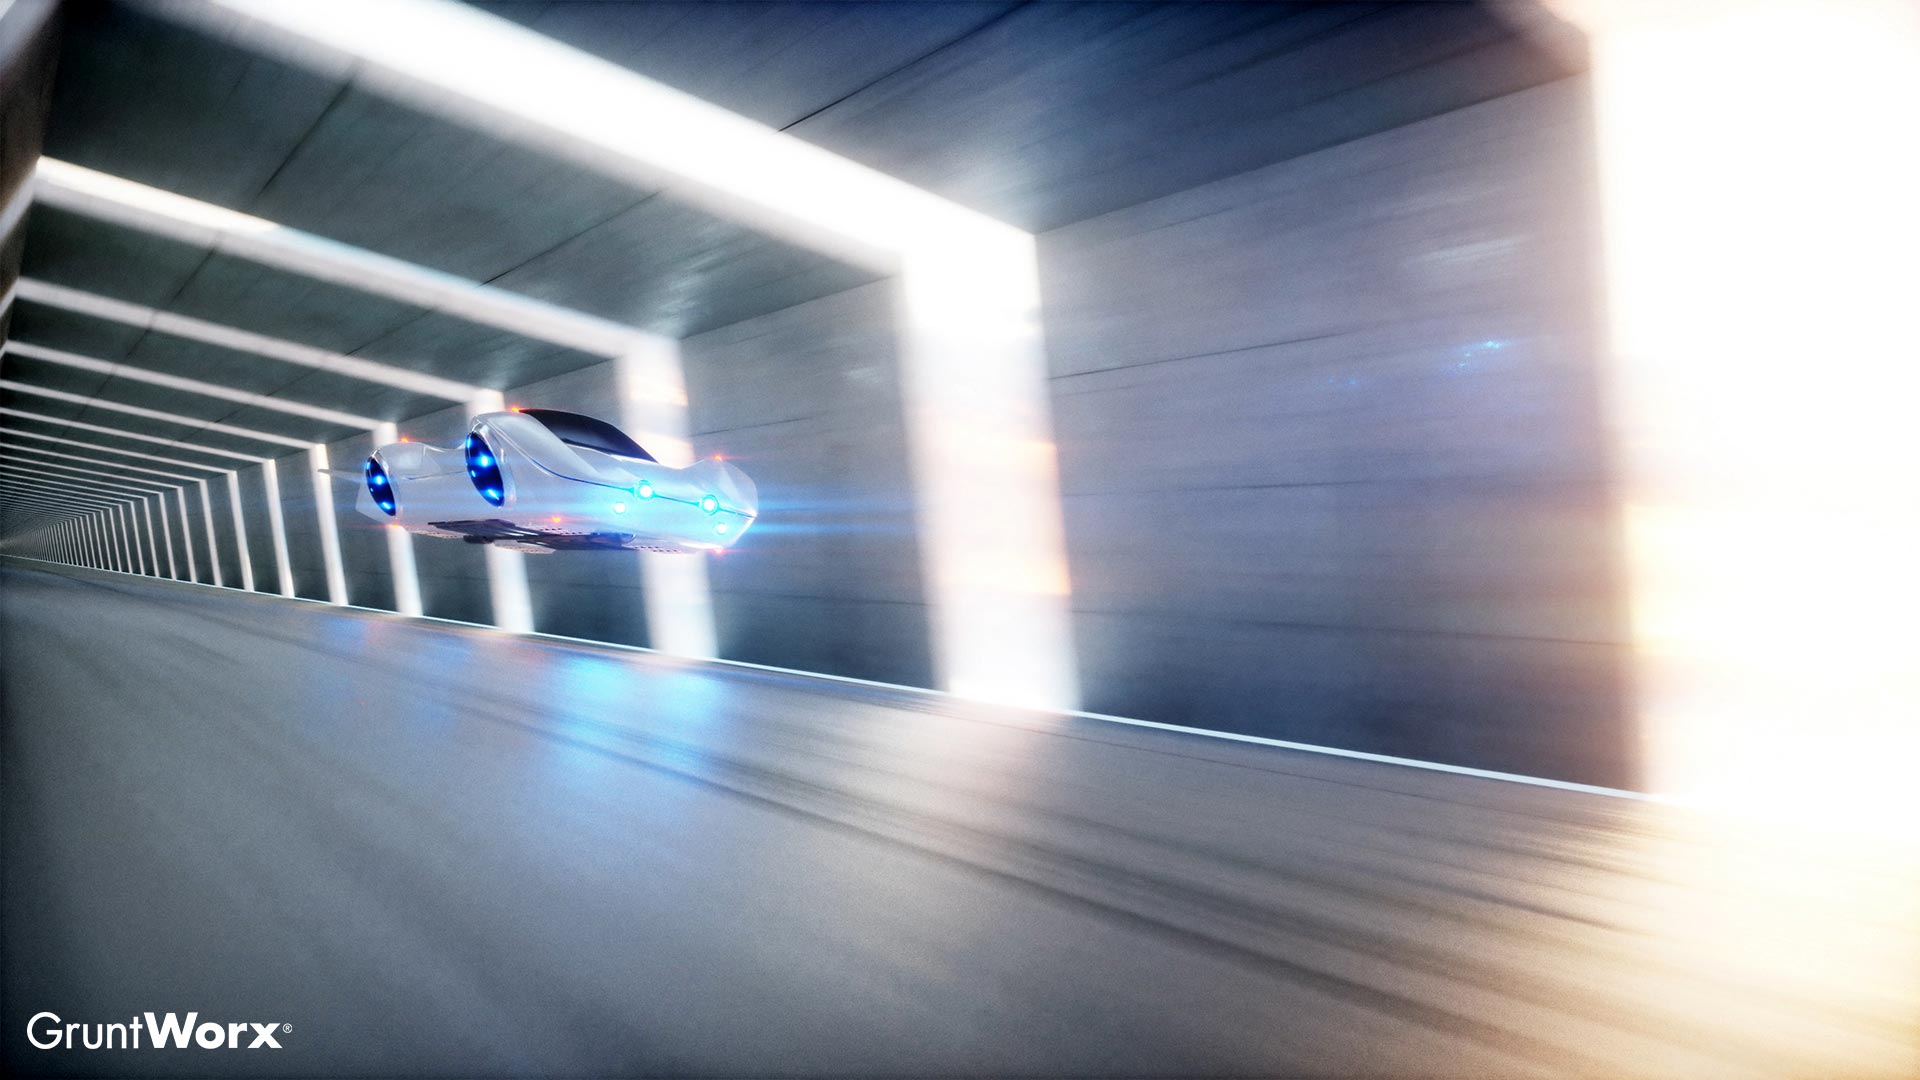 gwx-546-flying-cars-and-other-tech-innovations-we-thought-wed-have